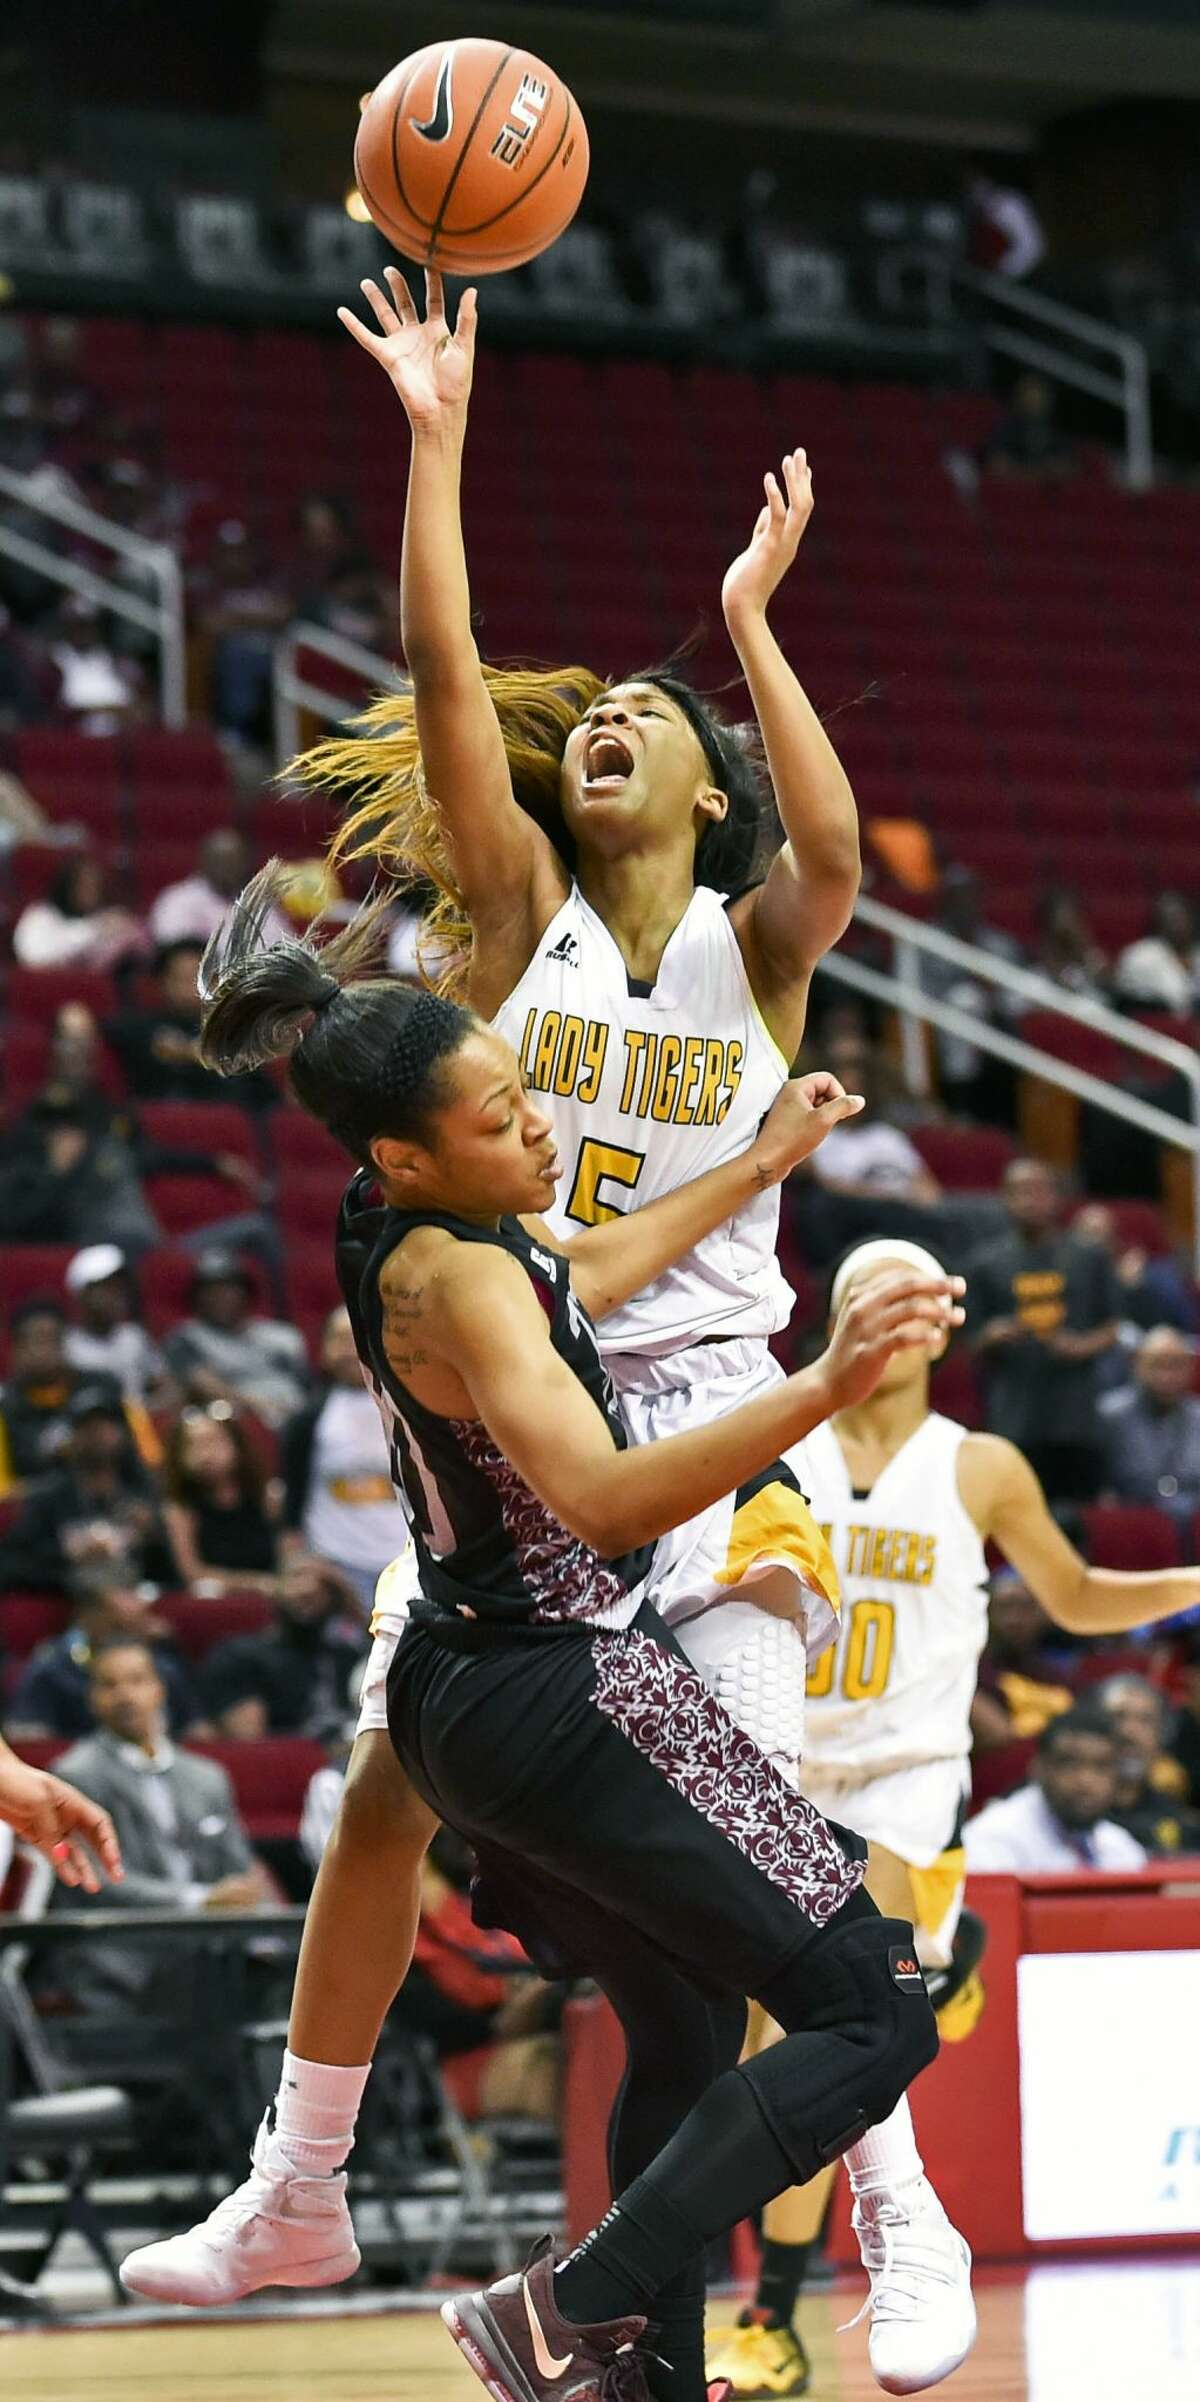 Grambling guard Shakyla Hill (5) shoots over Texas Southern guard Kaitlyn Palmer during the second half of an NCAA college basketball game in the championship of the Southwestern Athletic Conference, Saturday, March 11, 2017, in Houston. TSU won 70-66. (AP Photo/Eric Christian Smith)